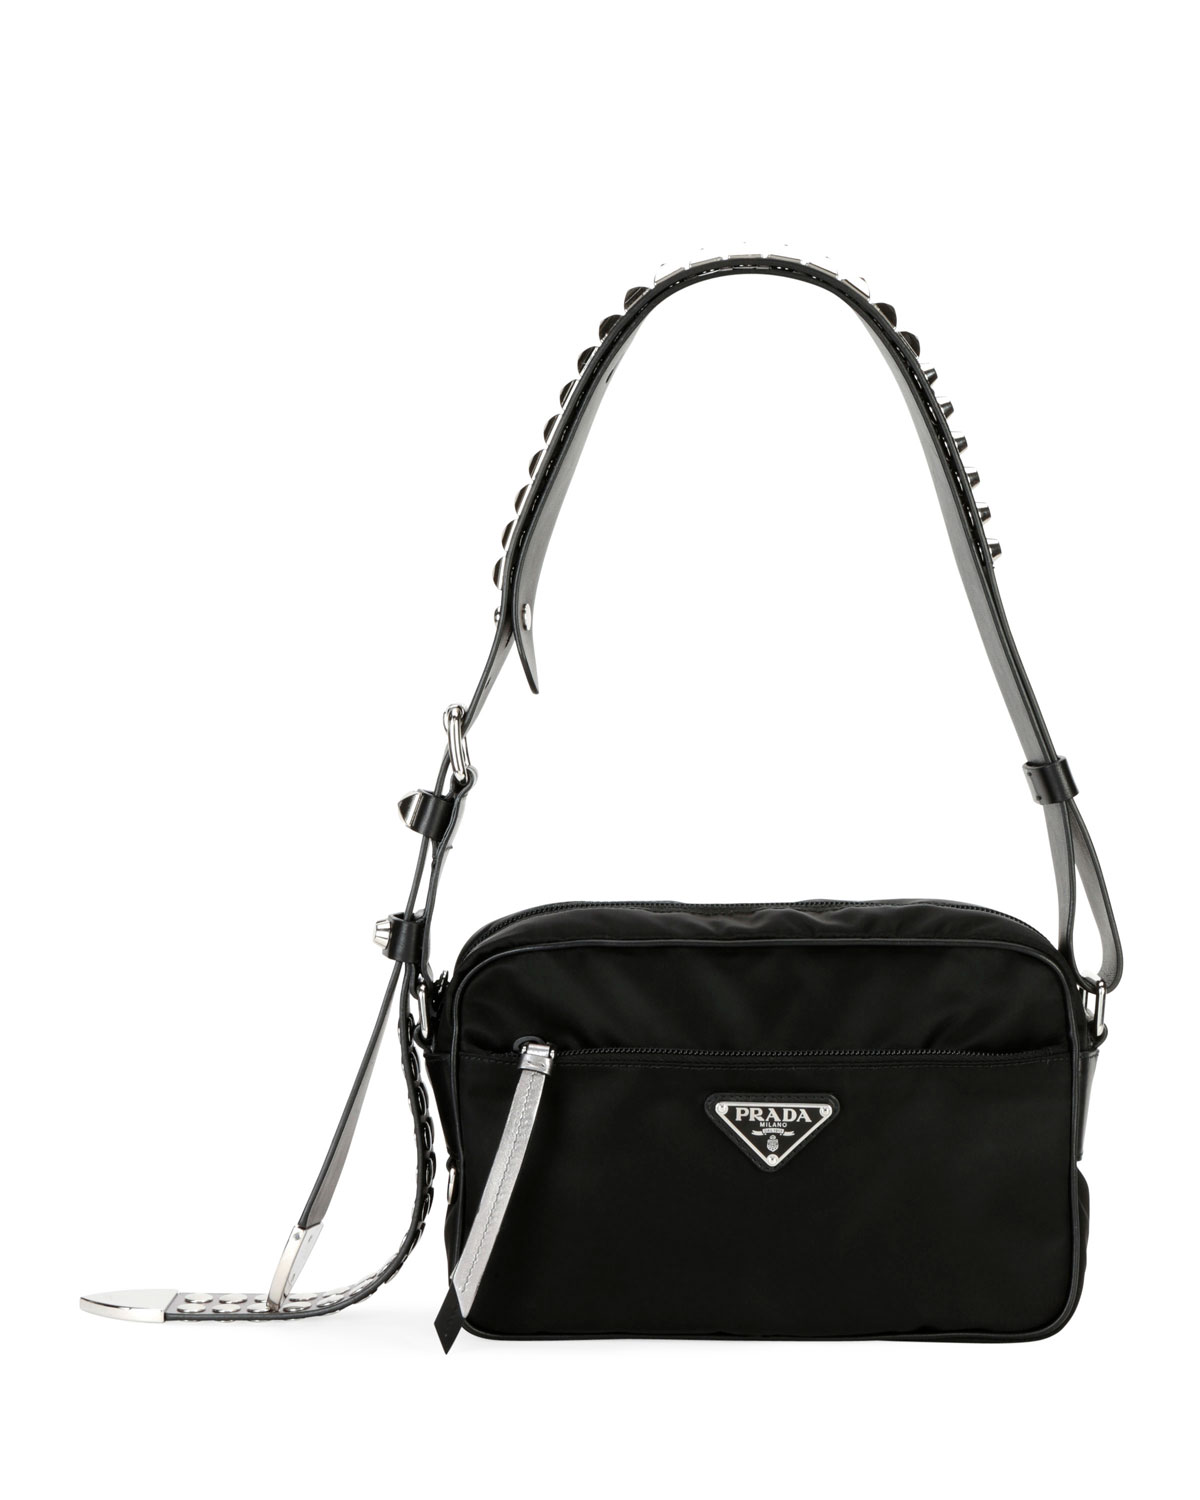 Prada Black Nylon Shoulder Bag with Studding